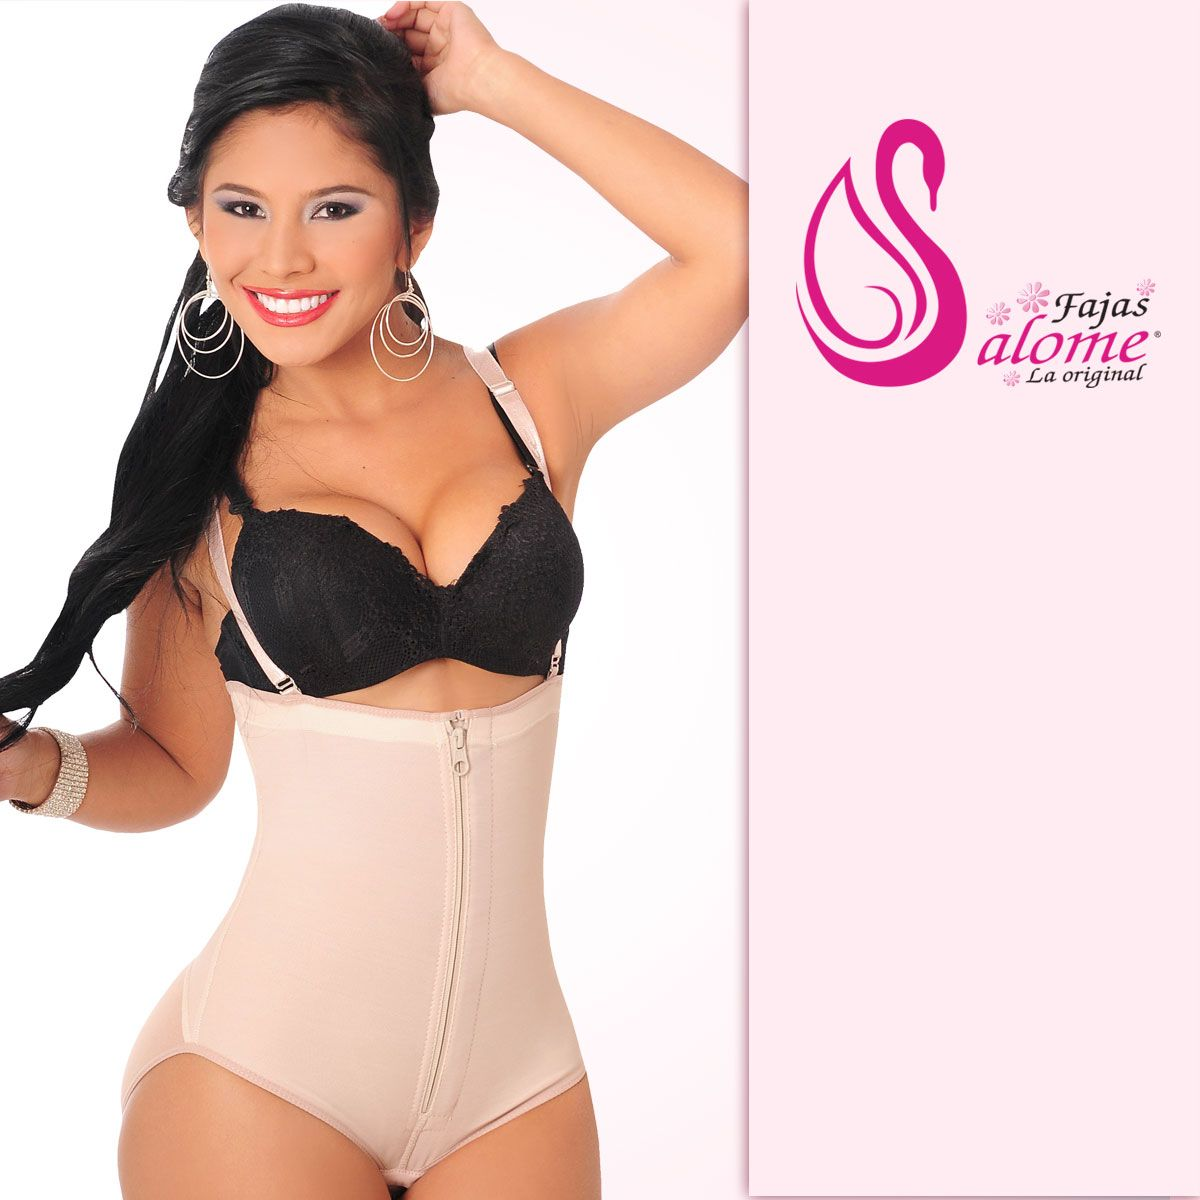 8a72fe7efa For ONLY 68  you can get our Fajas Salome 0418 Women s Body Shaper  Postsurgery Girdle